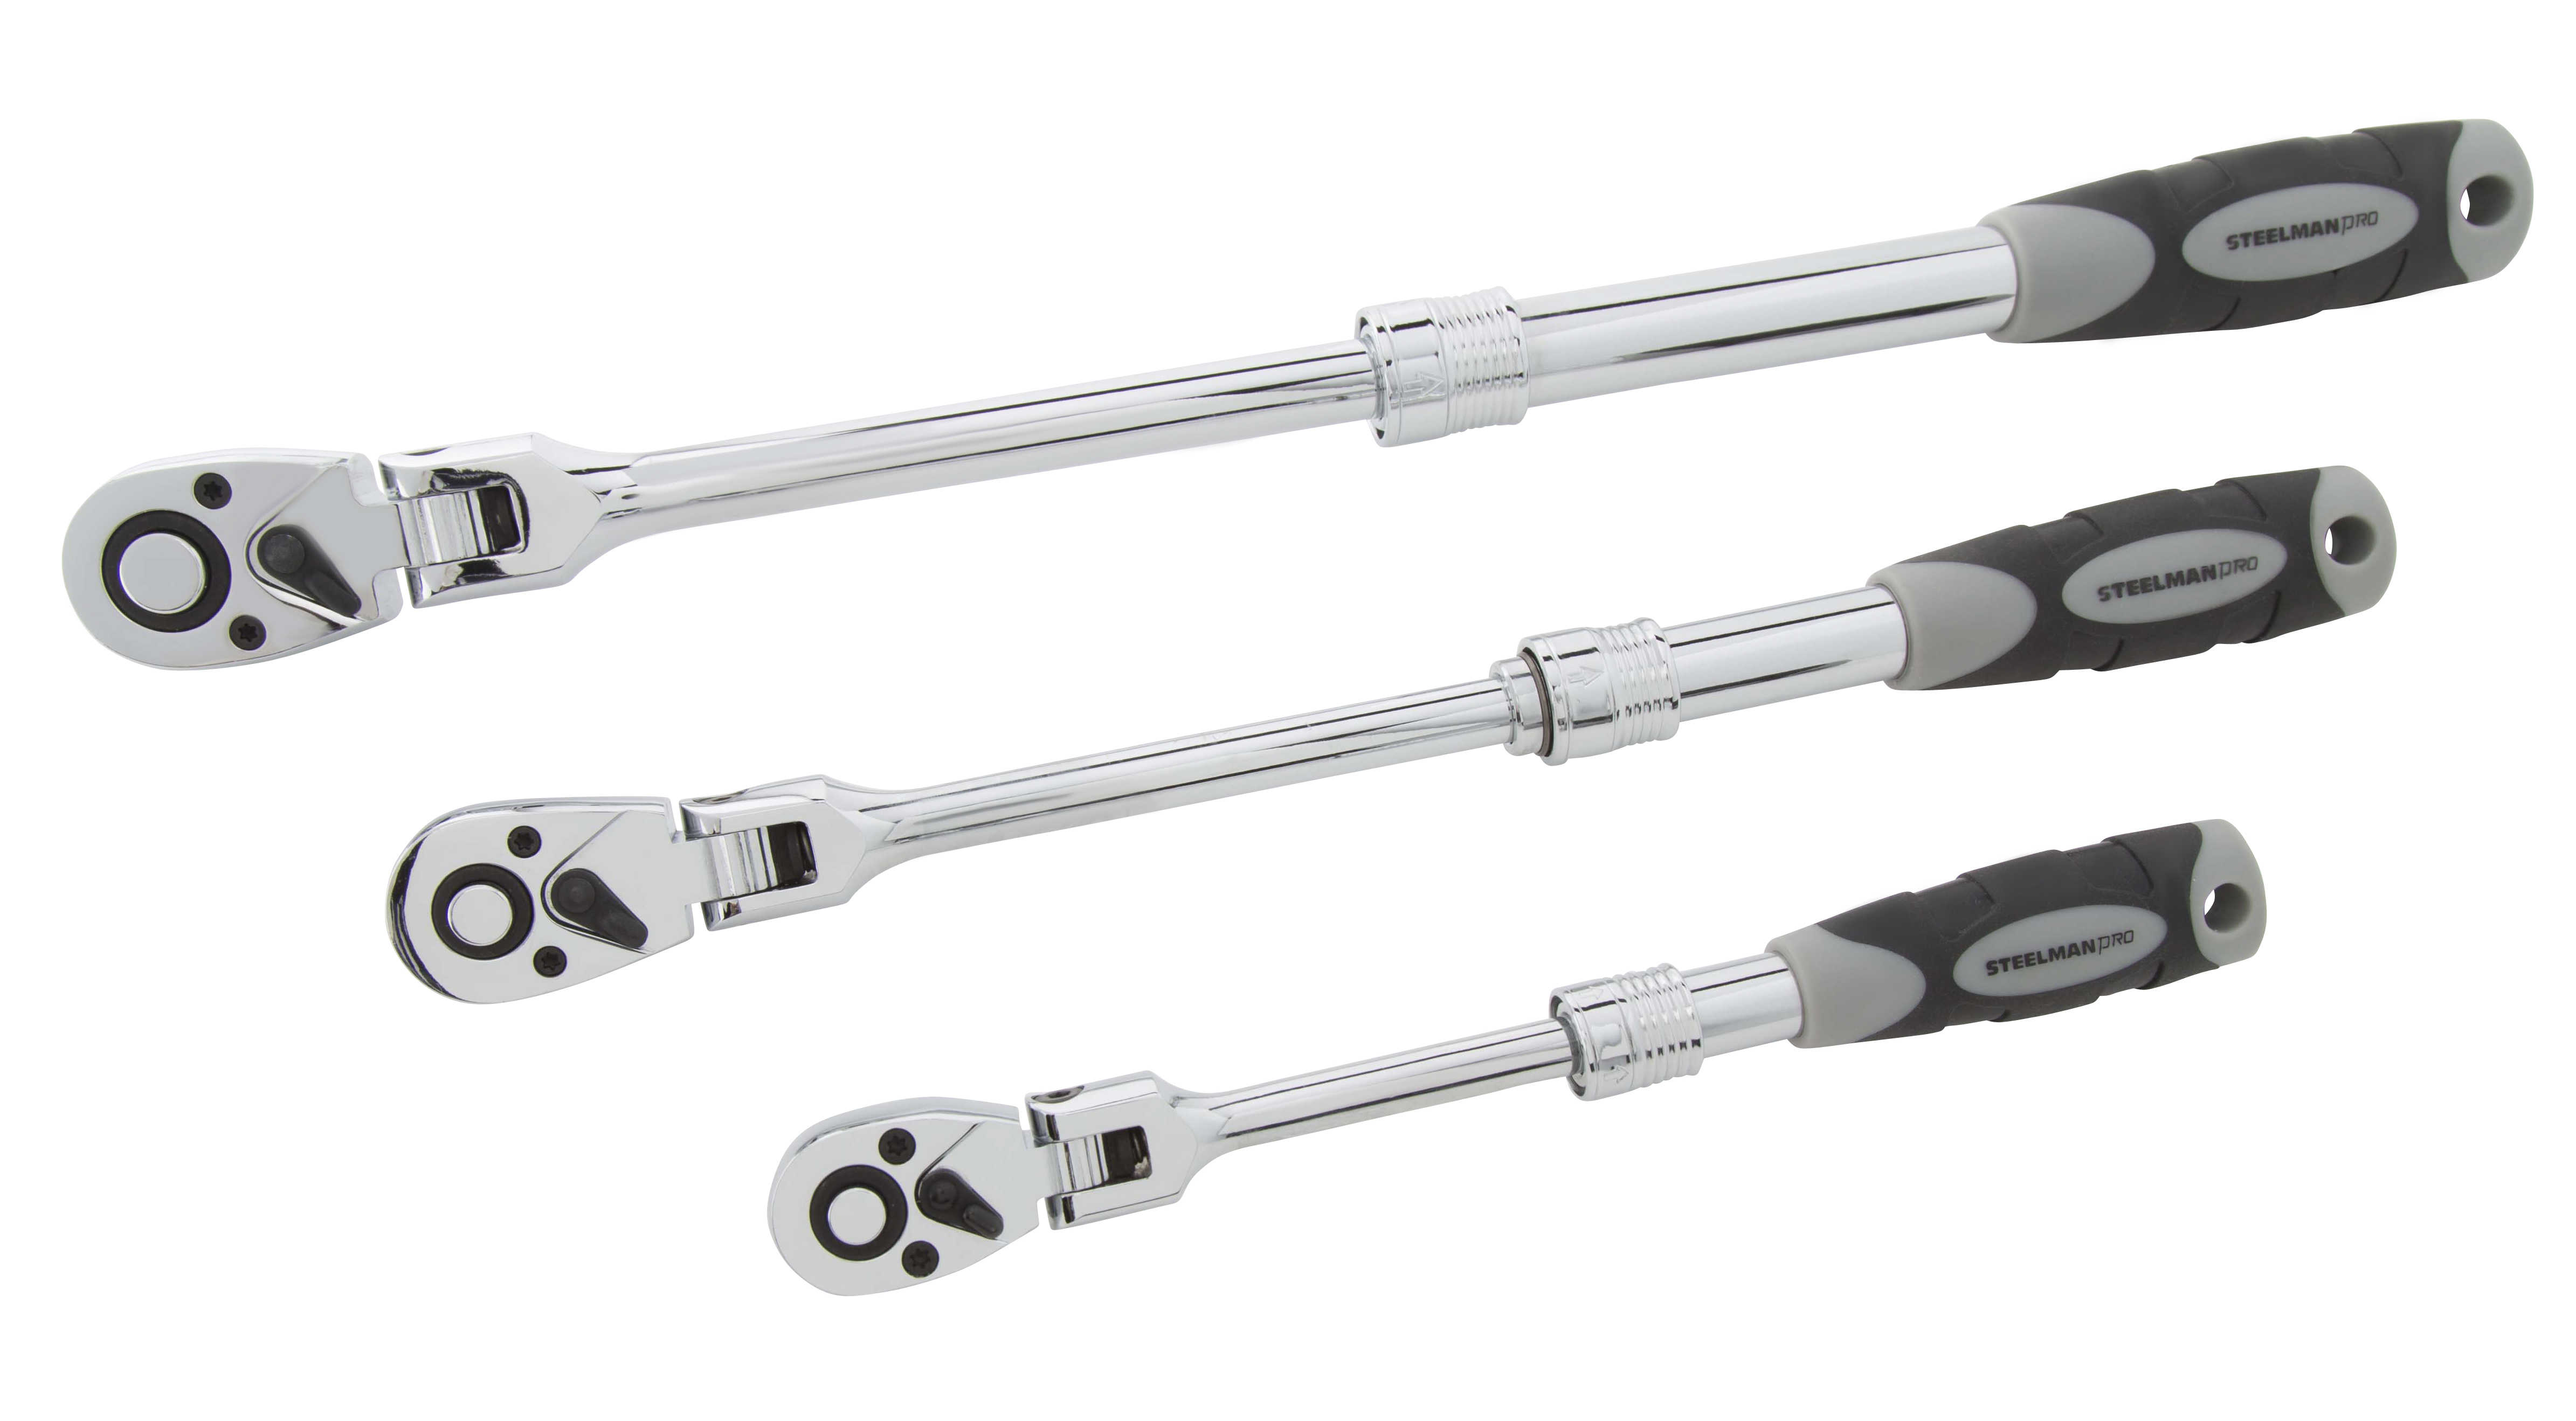 STEELMAN PRO 96753 3-Piece Extendable Flex-Head Ratchet Set